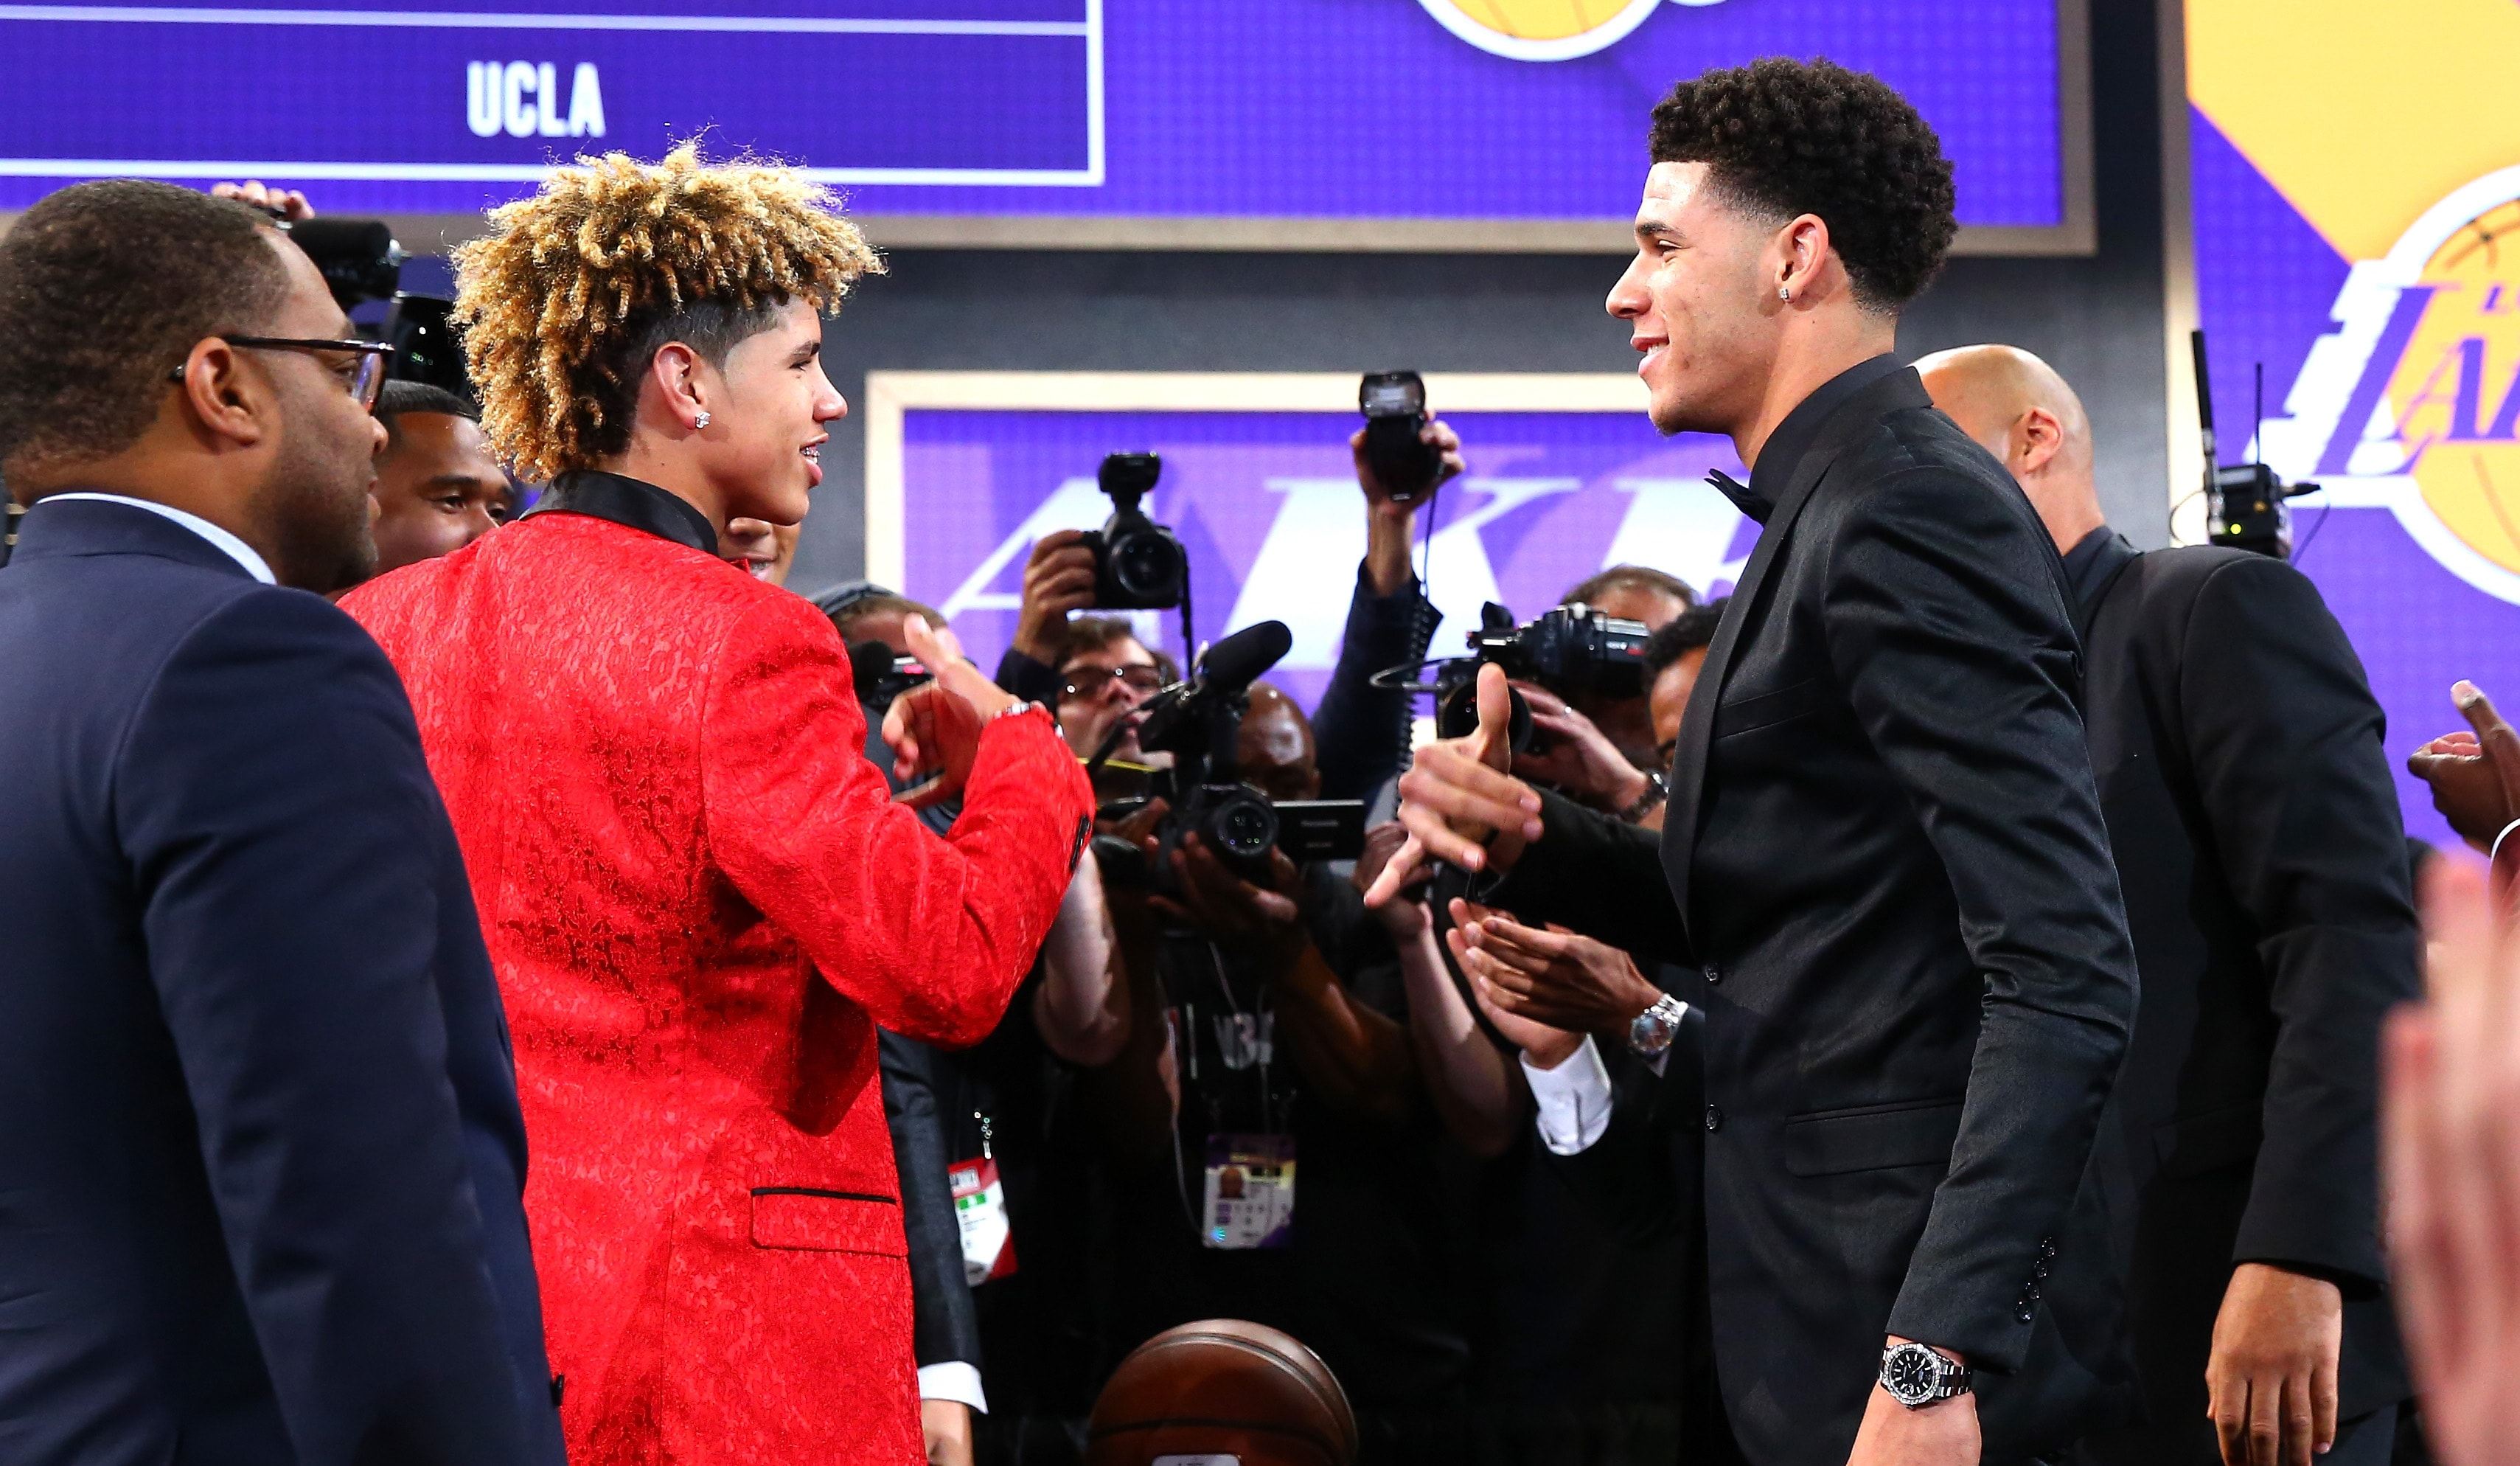 Lonzo and his brother LaMelo